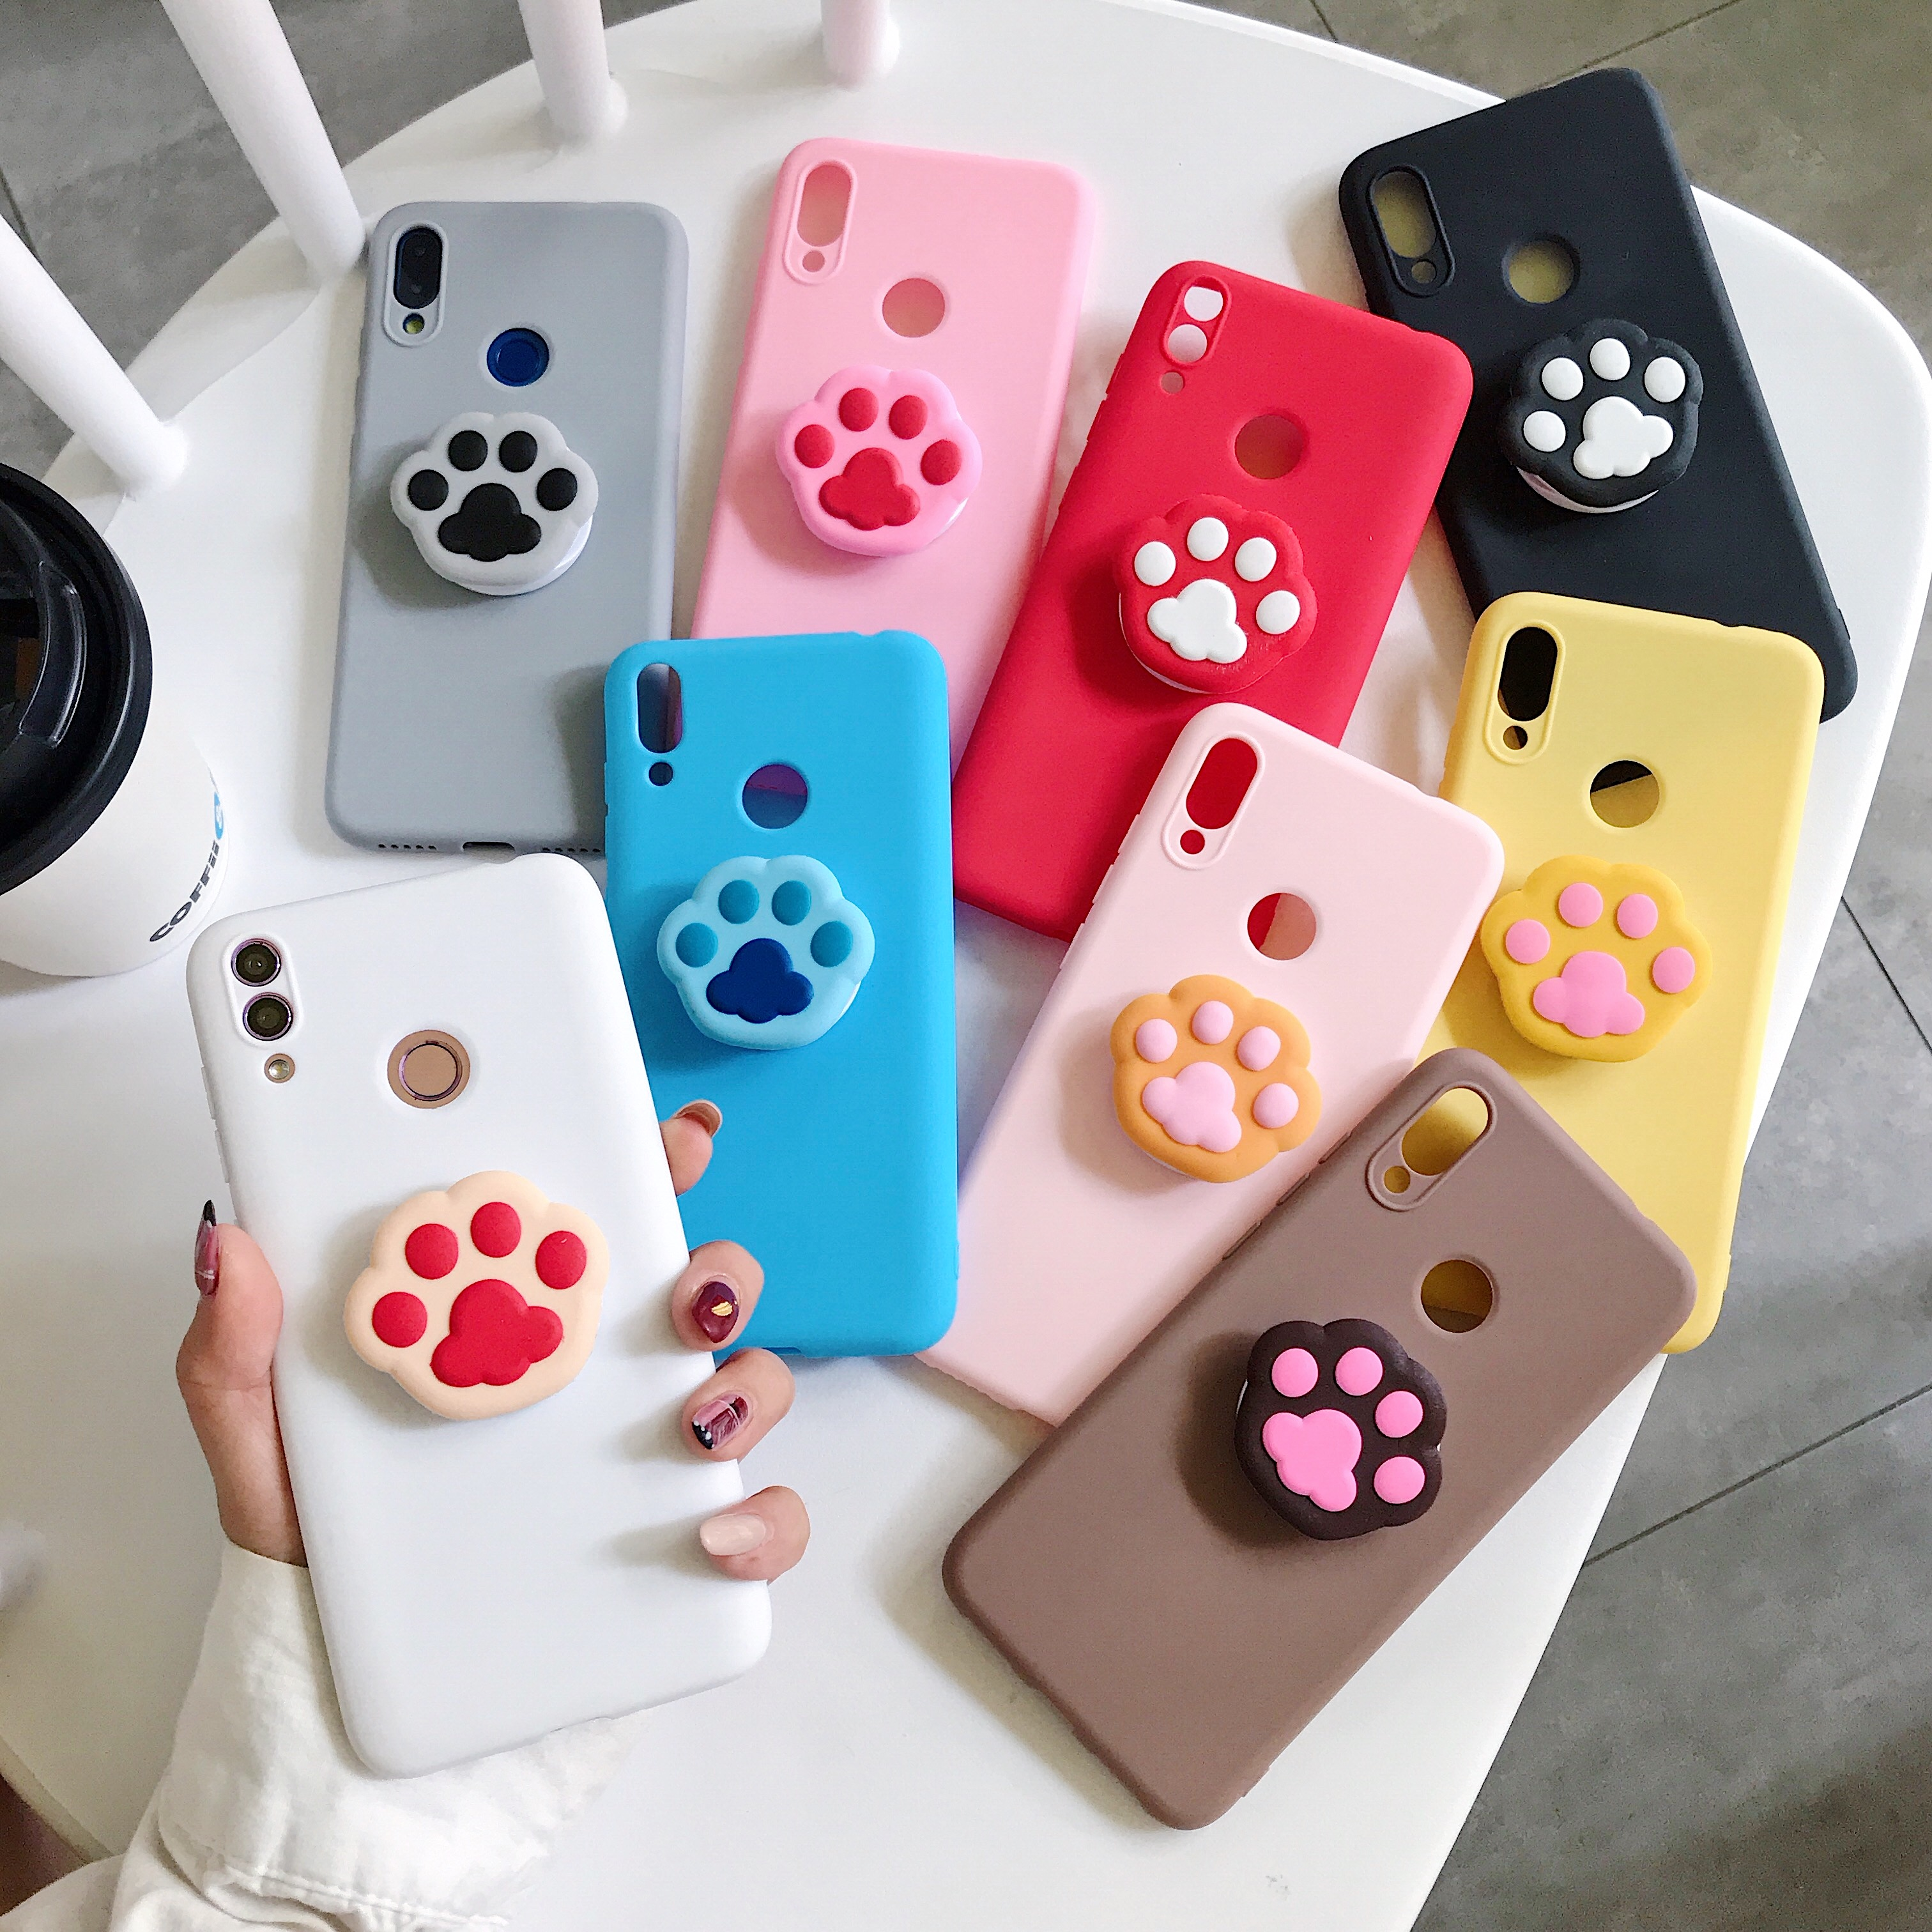 Cute 3D Paw Print Holder Silicone Soft Phone <font><b>Case</b></font> For Huawei <font><b>honor</b></font> 6X 7X <font><b>8X</b></font> <font><b>Max</b></font> 8 Lite 8C 20 20Pro 20Lite Pro Cover Shell image